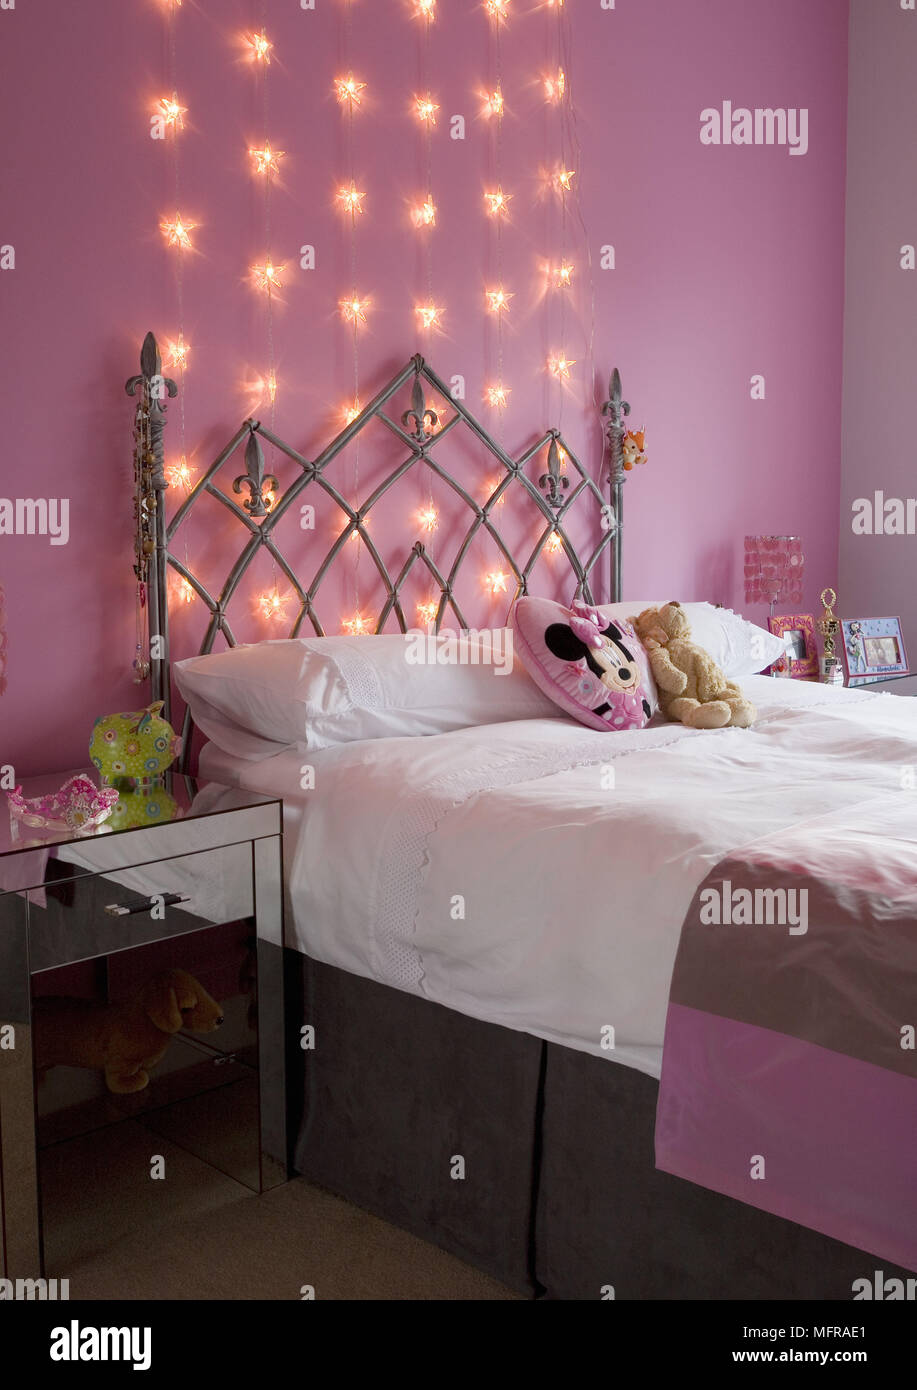 Wrought iron double bed in pink bedroom with fairy lights on ...